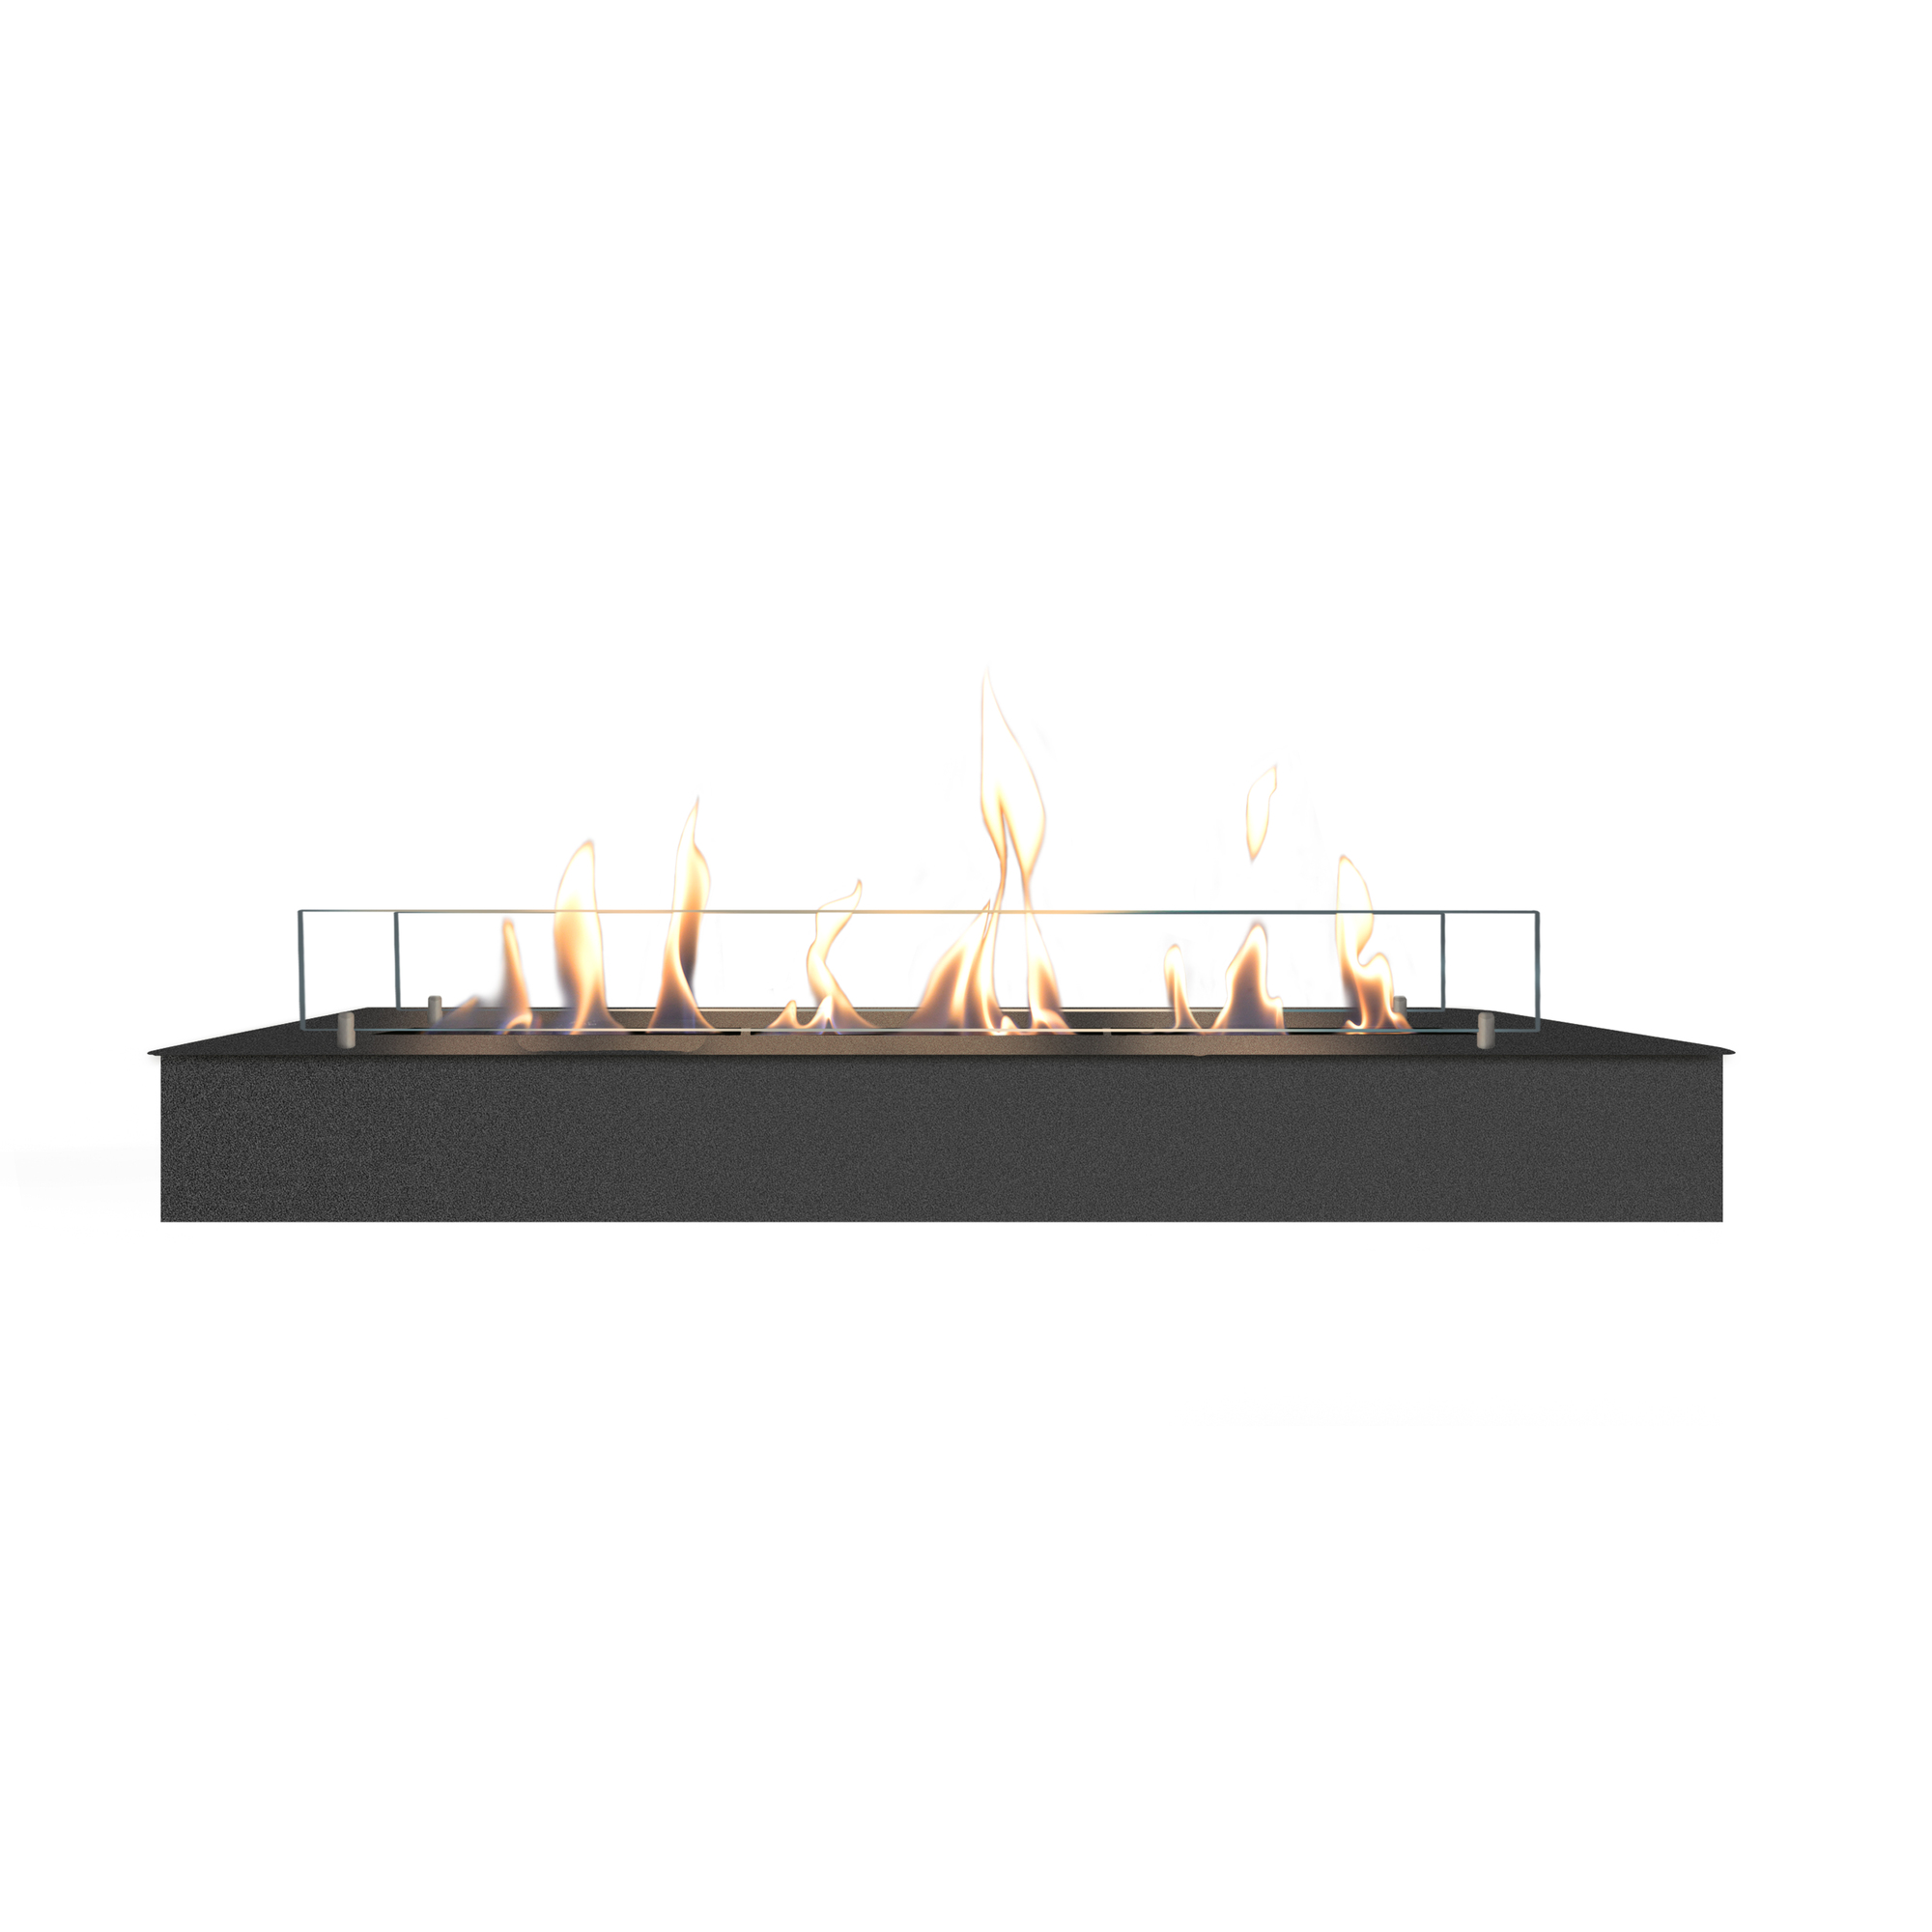 RUBY HOLLAND Bioethanol Burner 8014 LB Line Burner Black